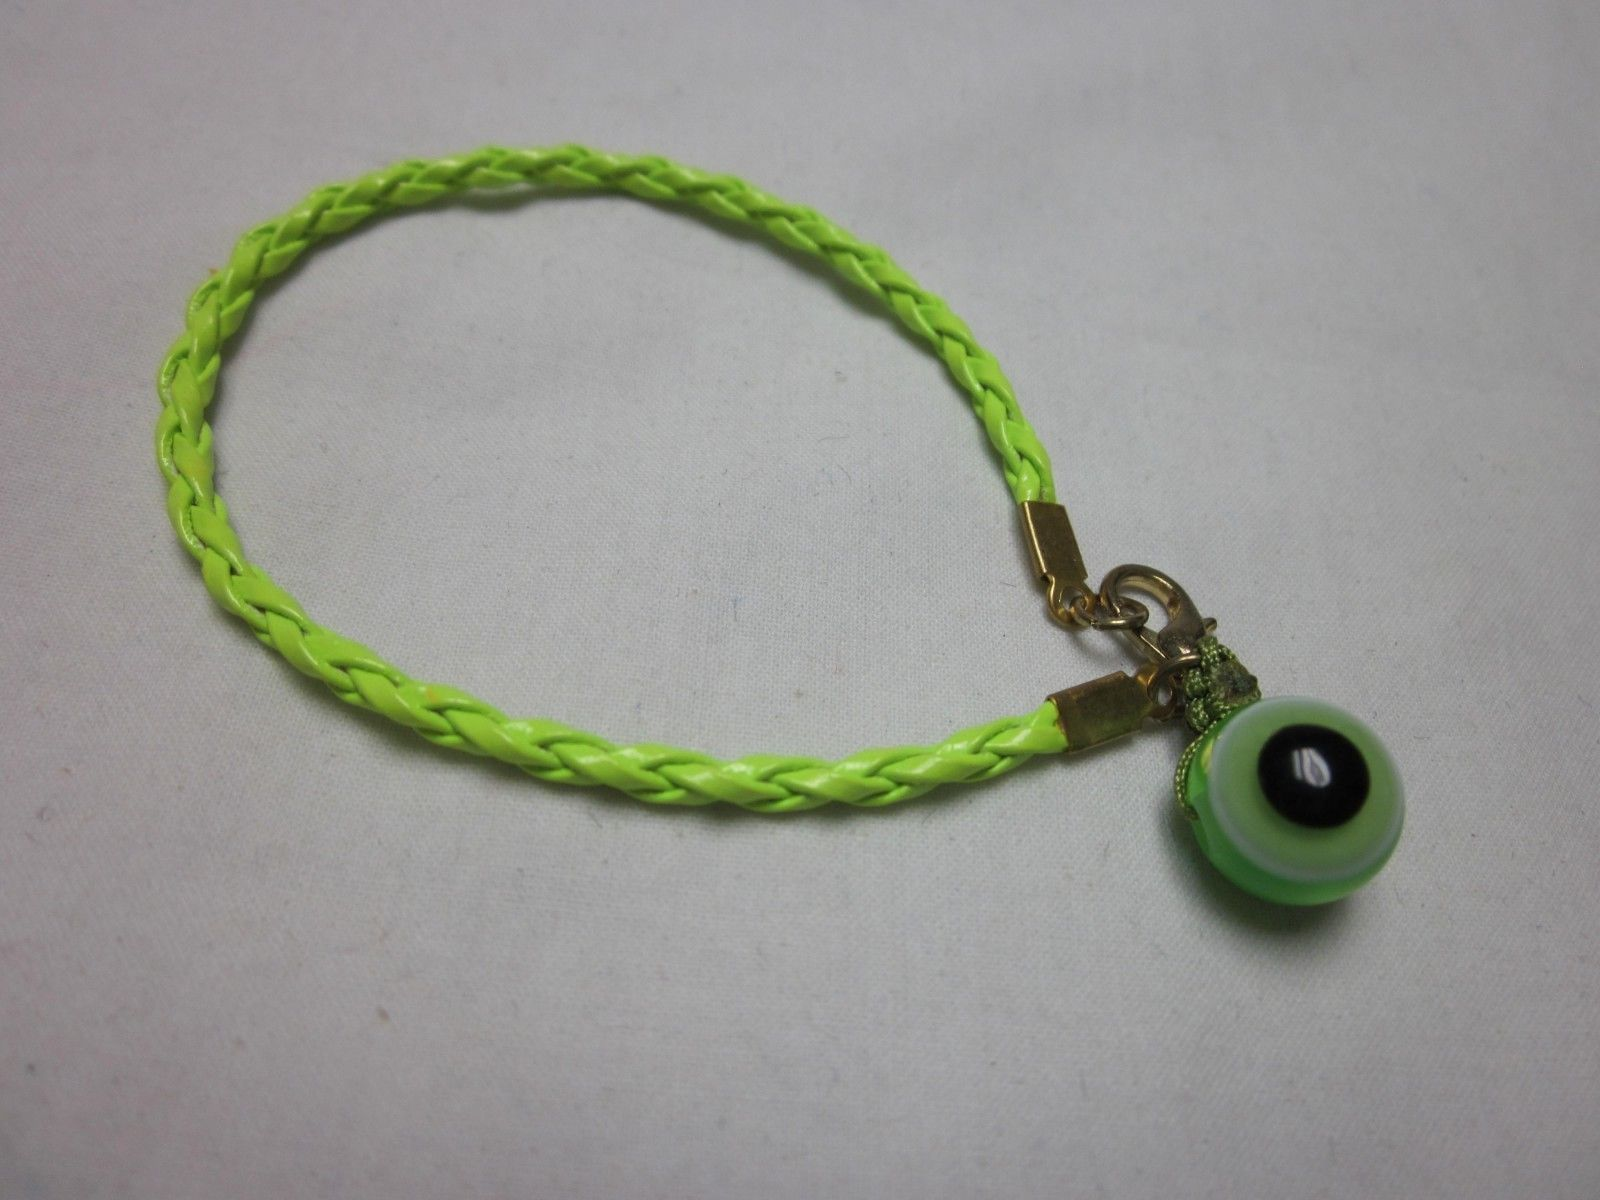 "6"" NEON GREEN BRAIDED CORD GLASS EVIL EYE HAMSA RUYI PROTECTION CHARM BRACELET"